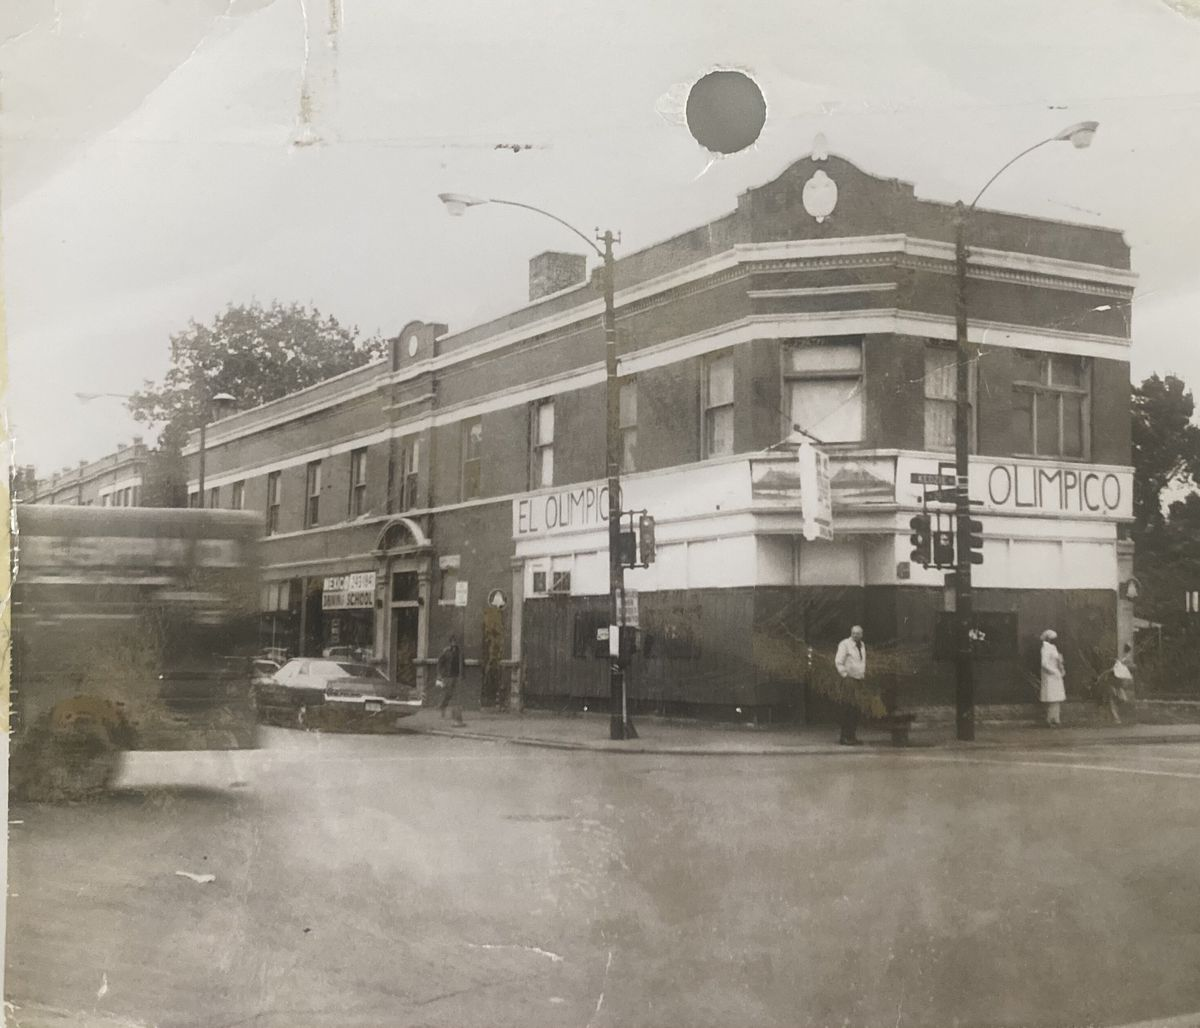 An old photograph of a corner building